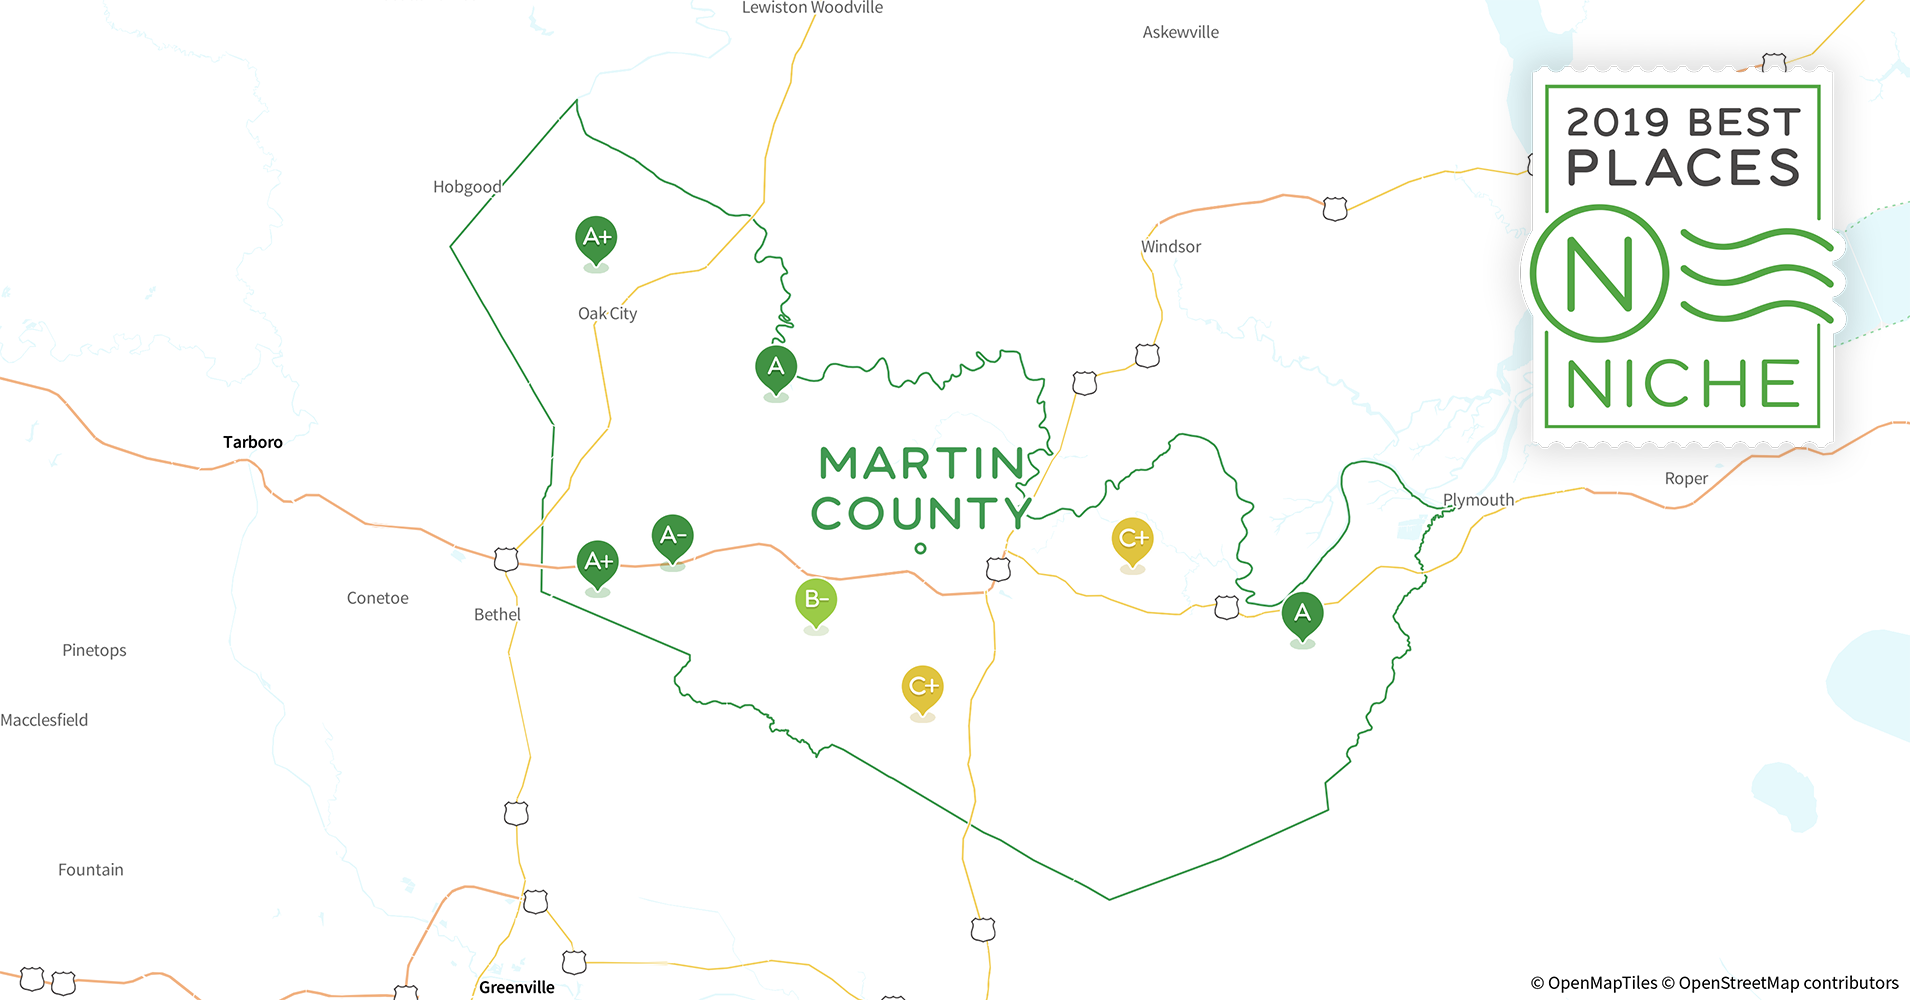 Martin County Nc Map.2019 Best Places To Live In Martin County Nc Niche